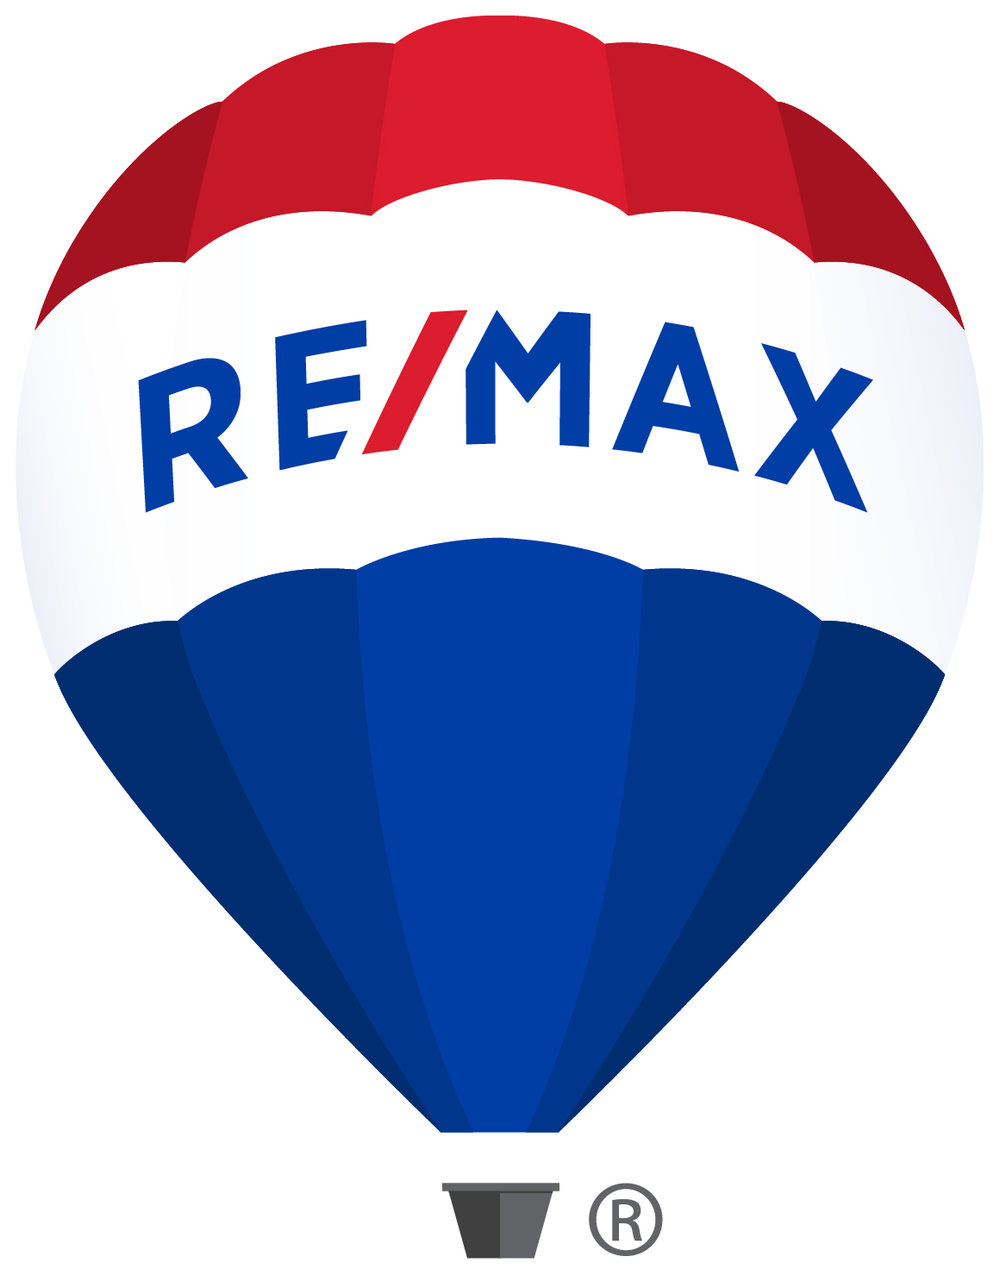 Remax - Tiny Covey